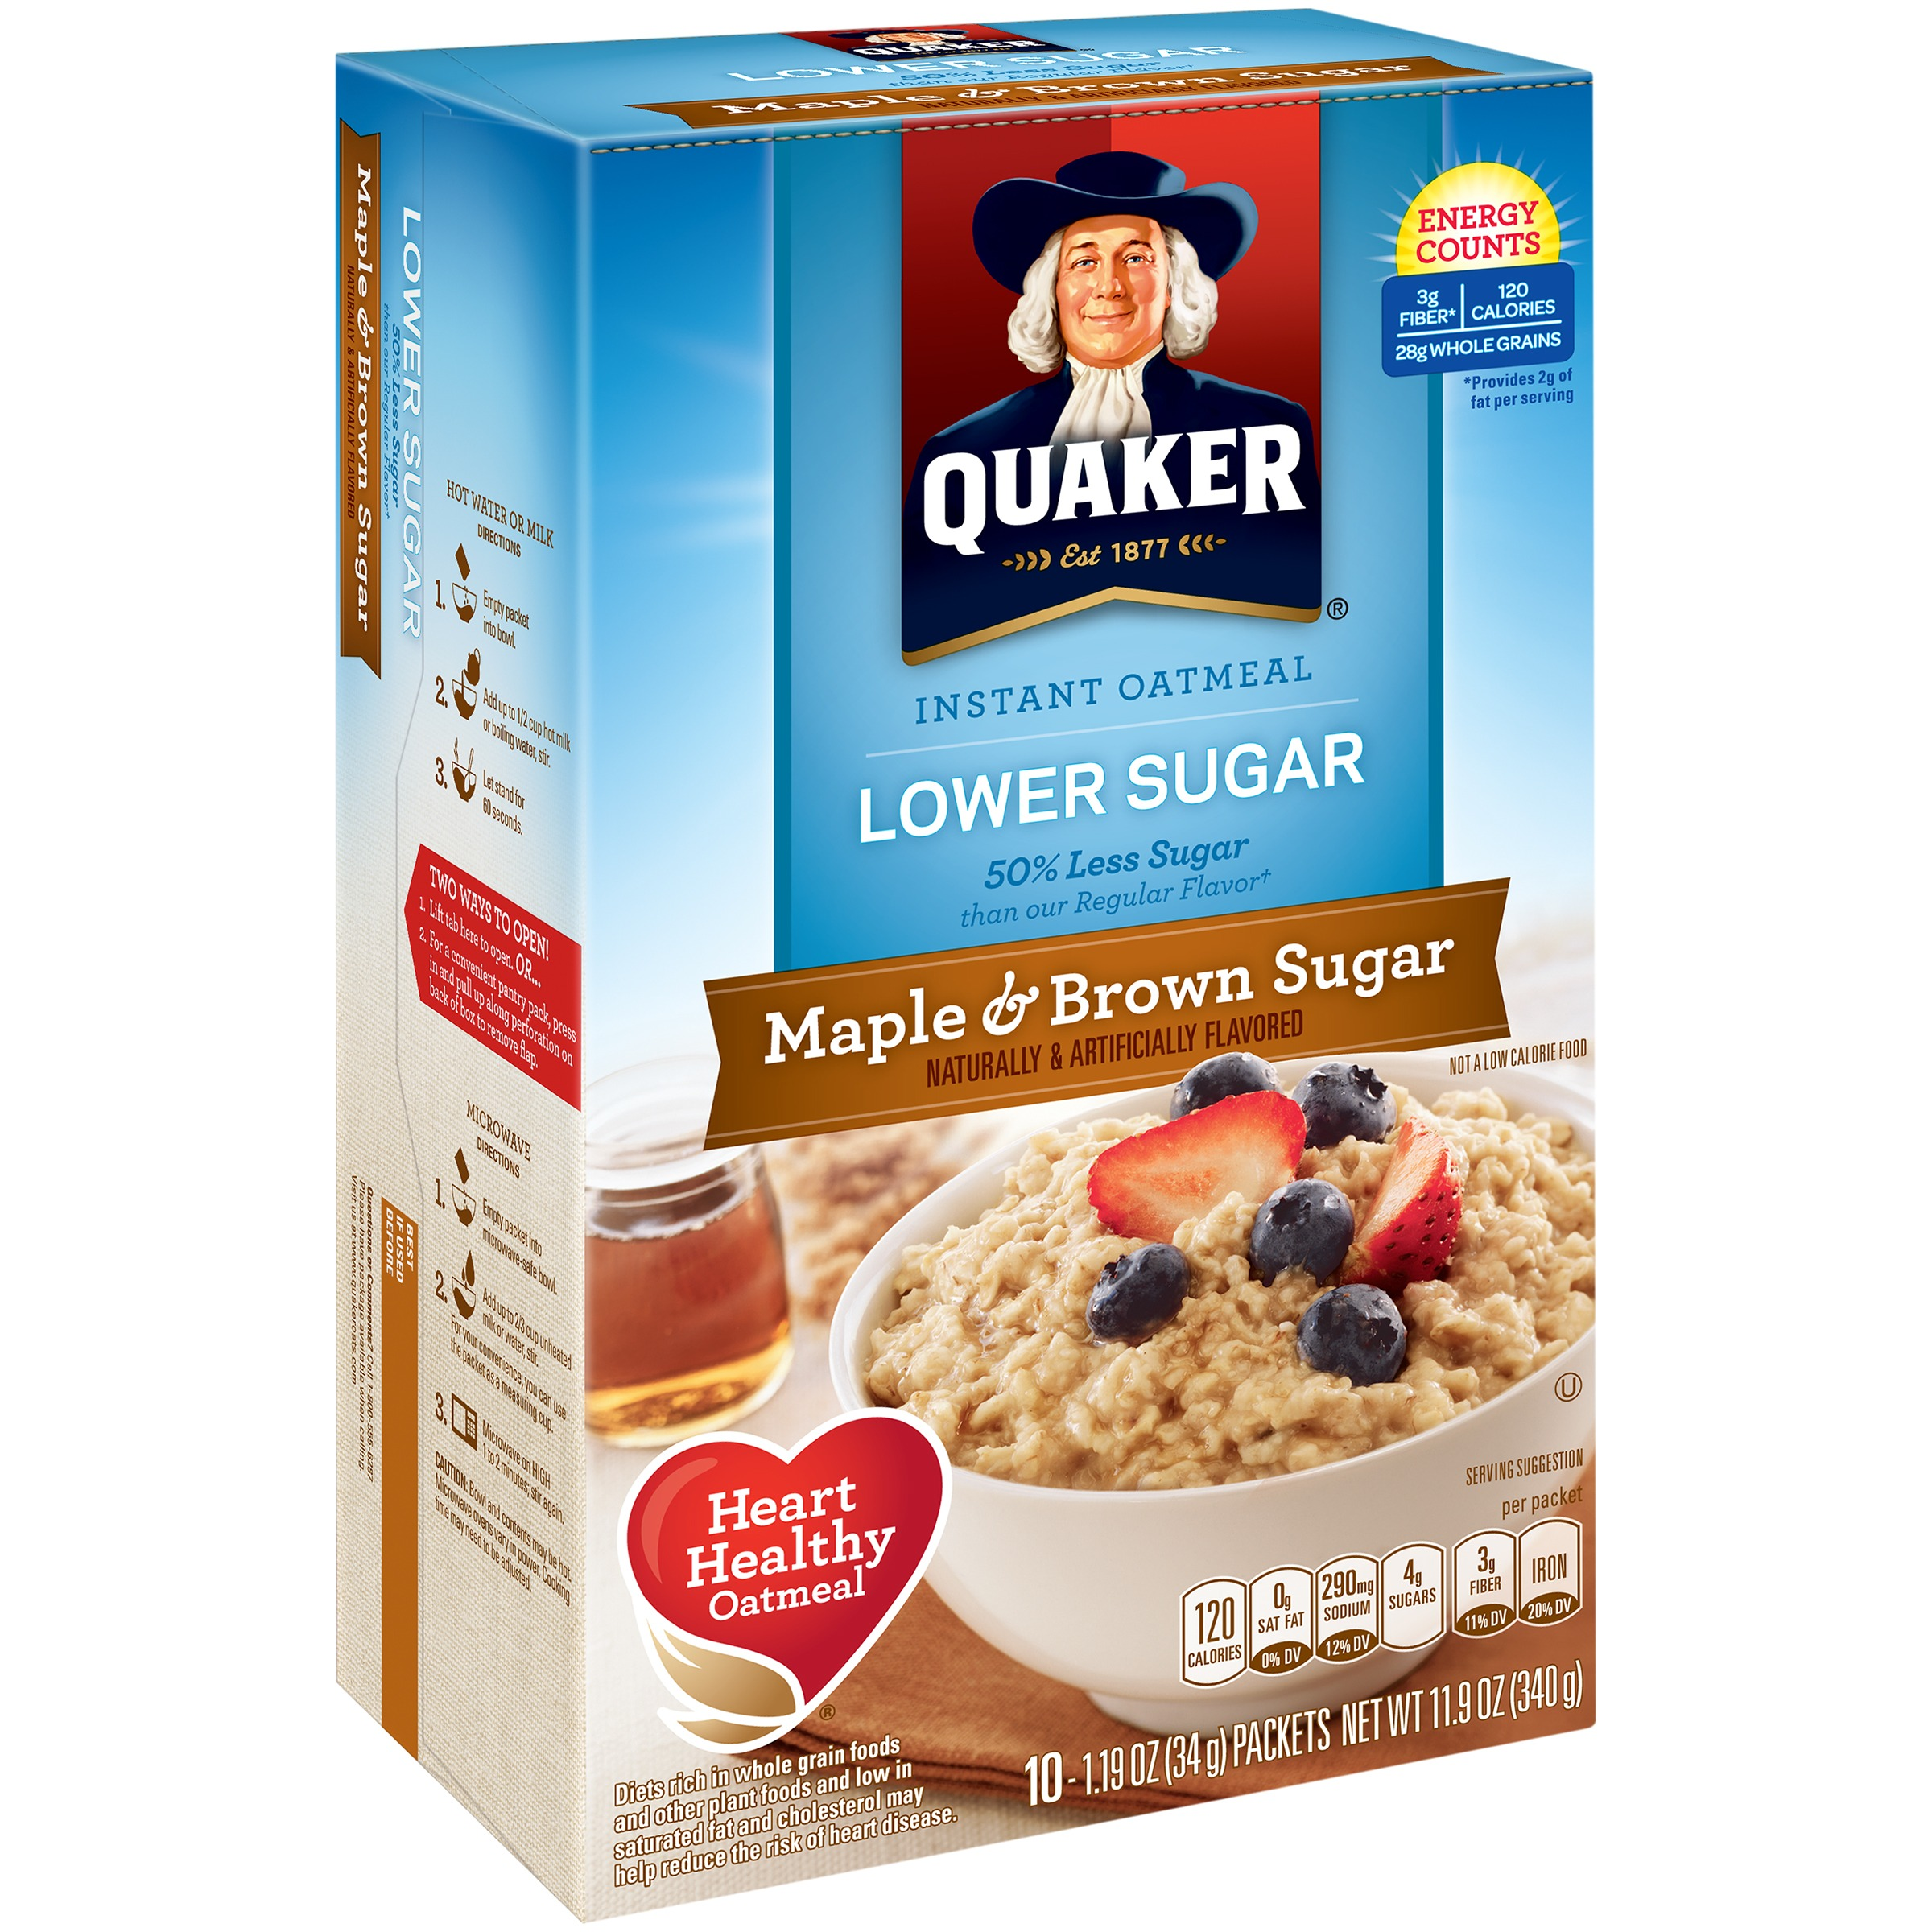 Quaker Lower Sugar Instant Oatmeal, Maple & Brown Sugar, 10 Count, 1.19 oz. Packets